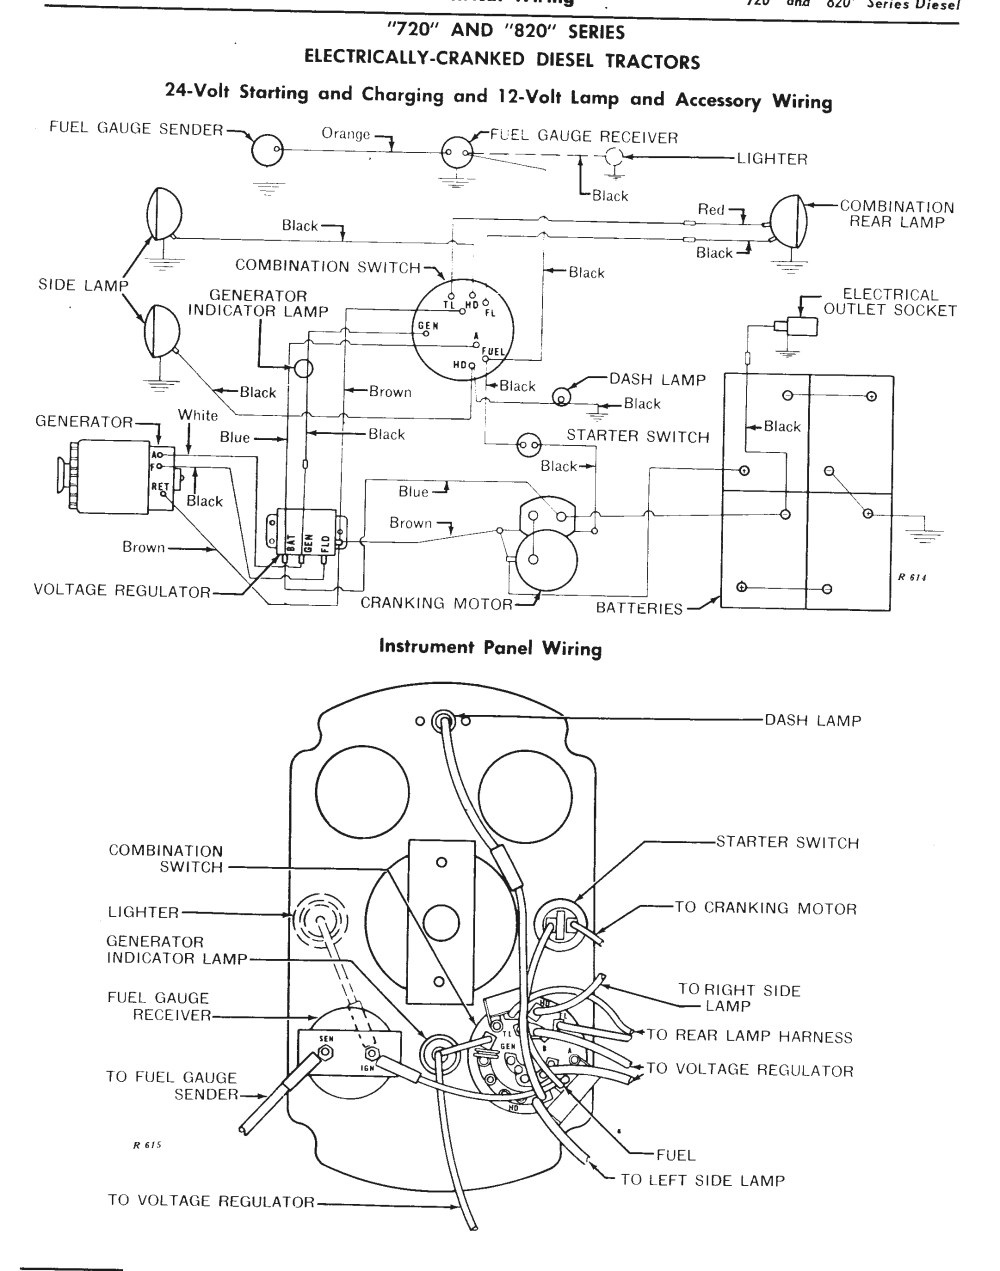 medium resolution of john deere 720 wiring diagram